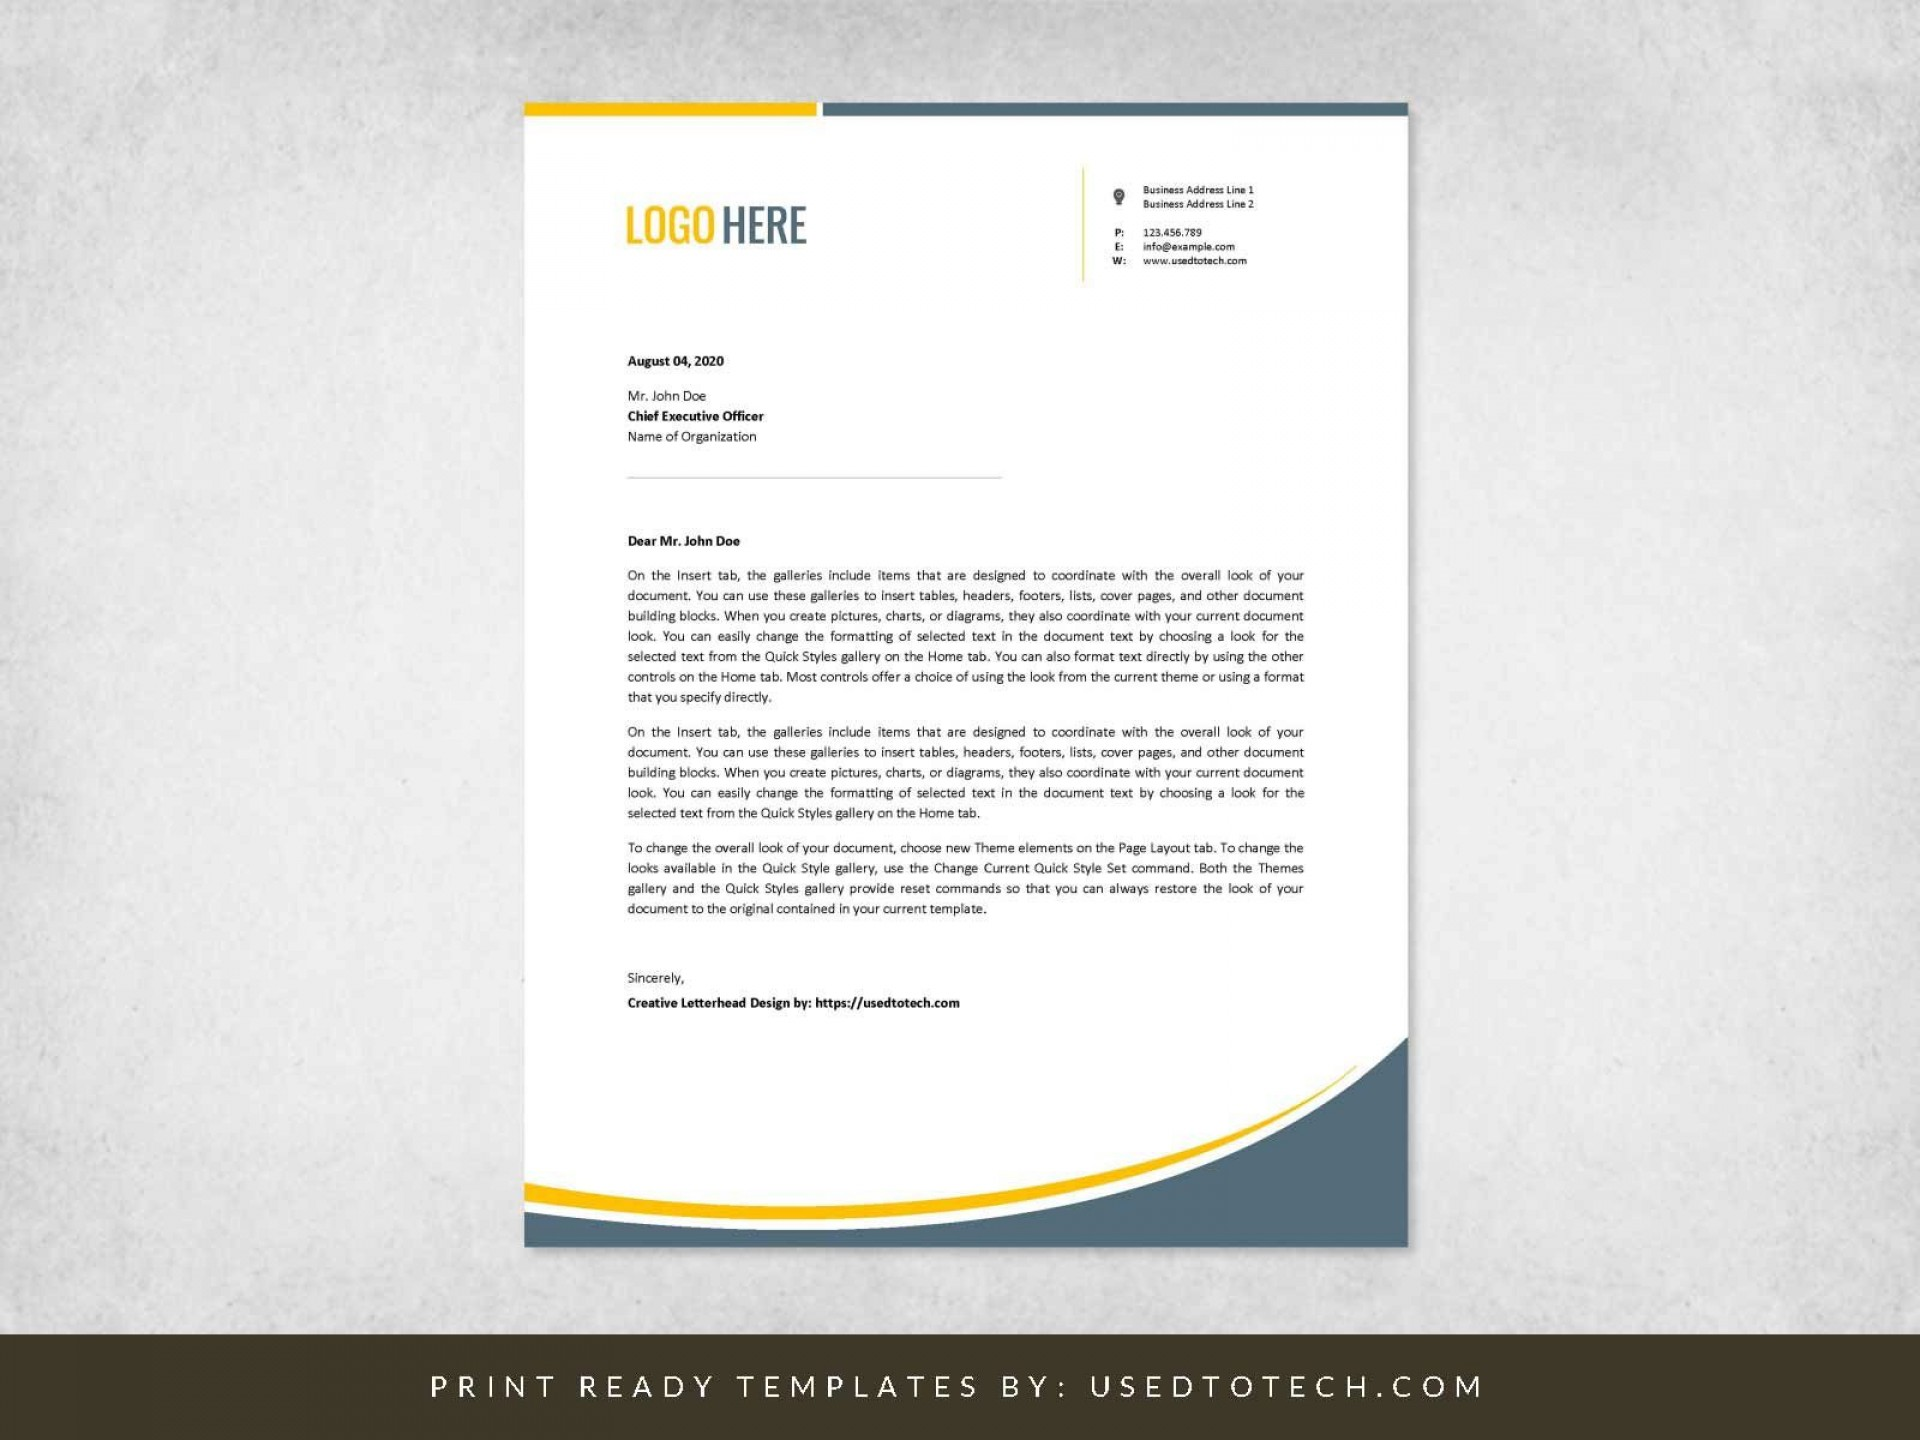 002 Marvelou Letterhead Template Free Download Doc Example  Company Format1920